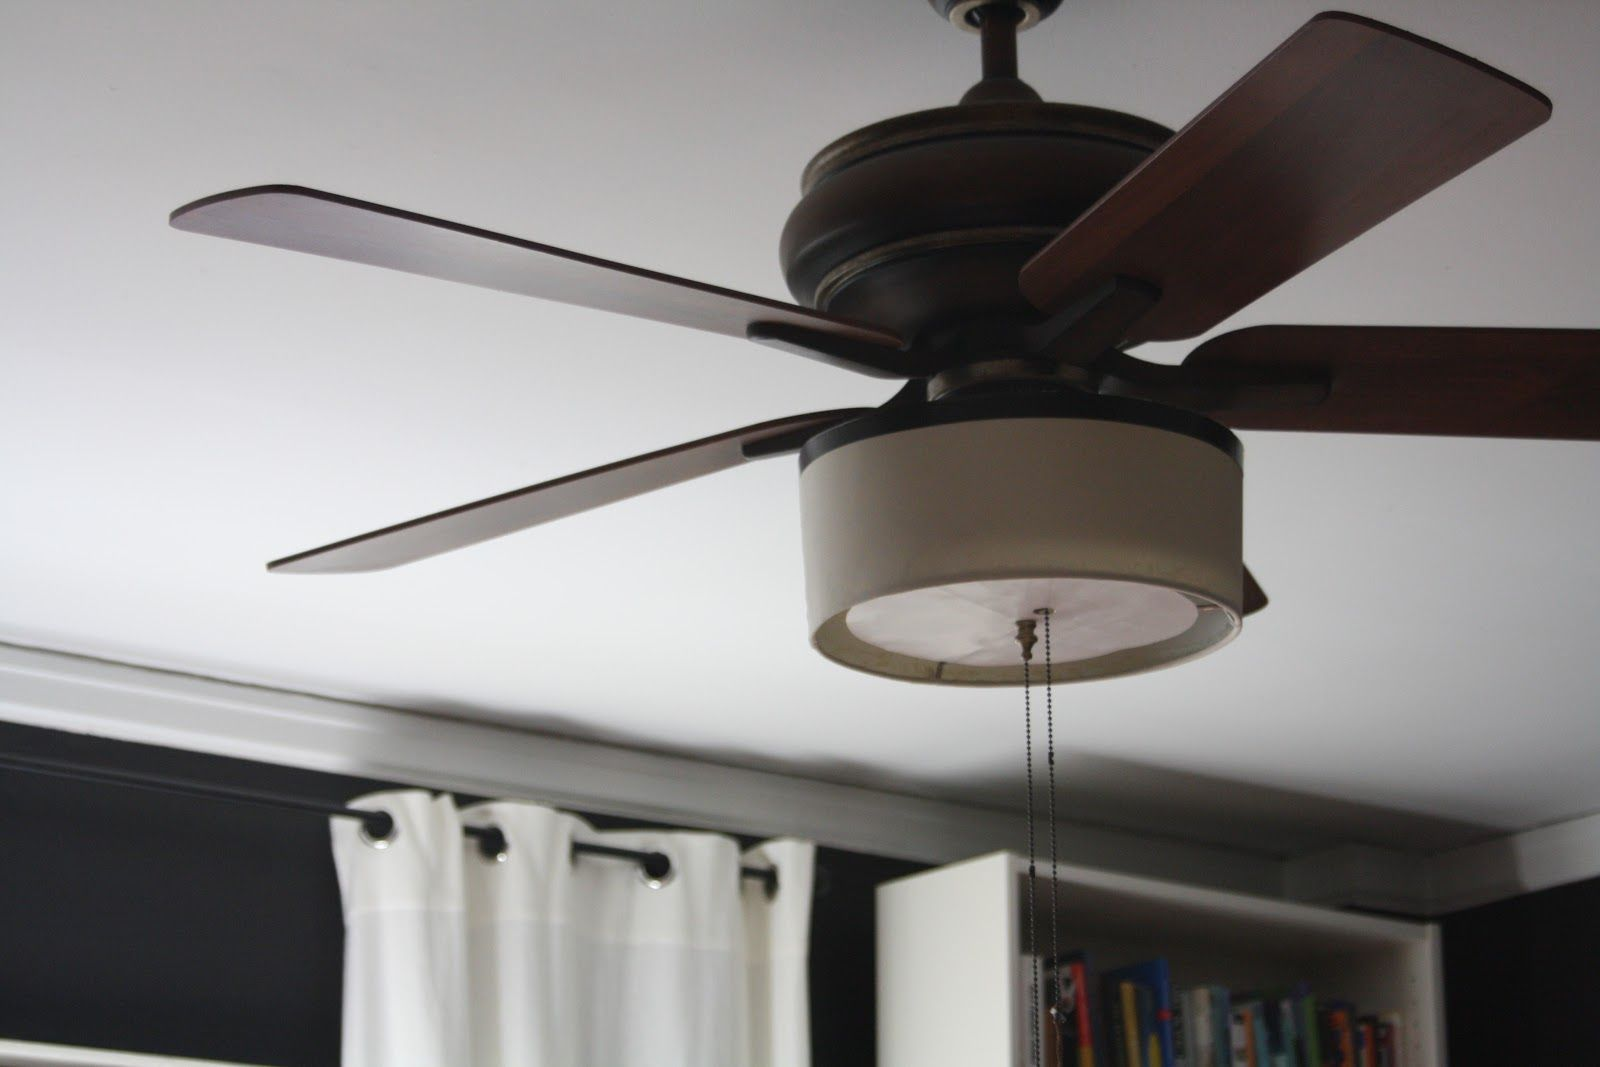 Diy Drum Shade Attached To Ceiling Fan Diy Lamp Makeover Ceiling Fan